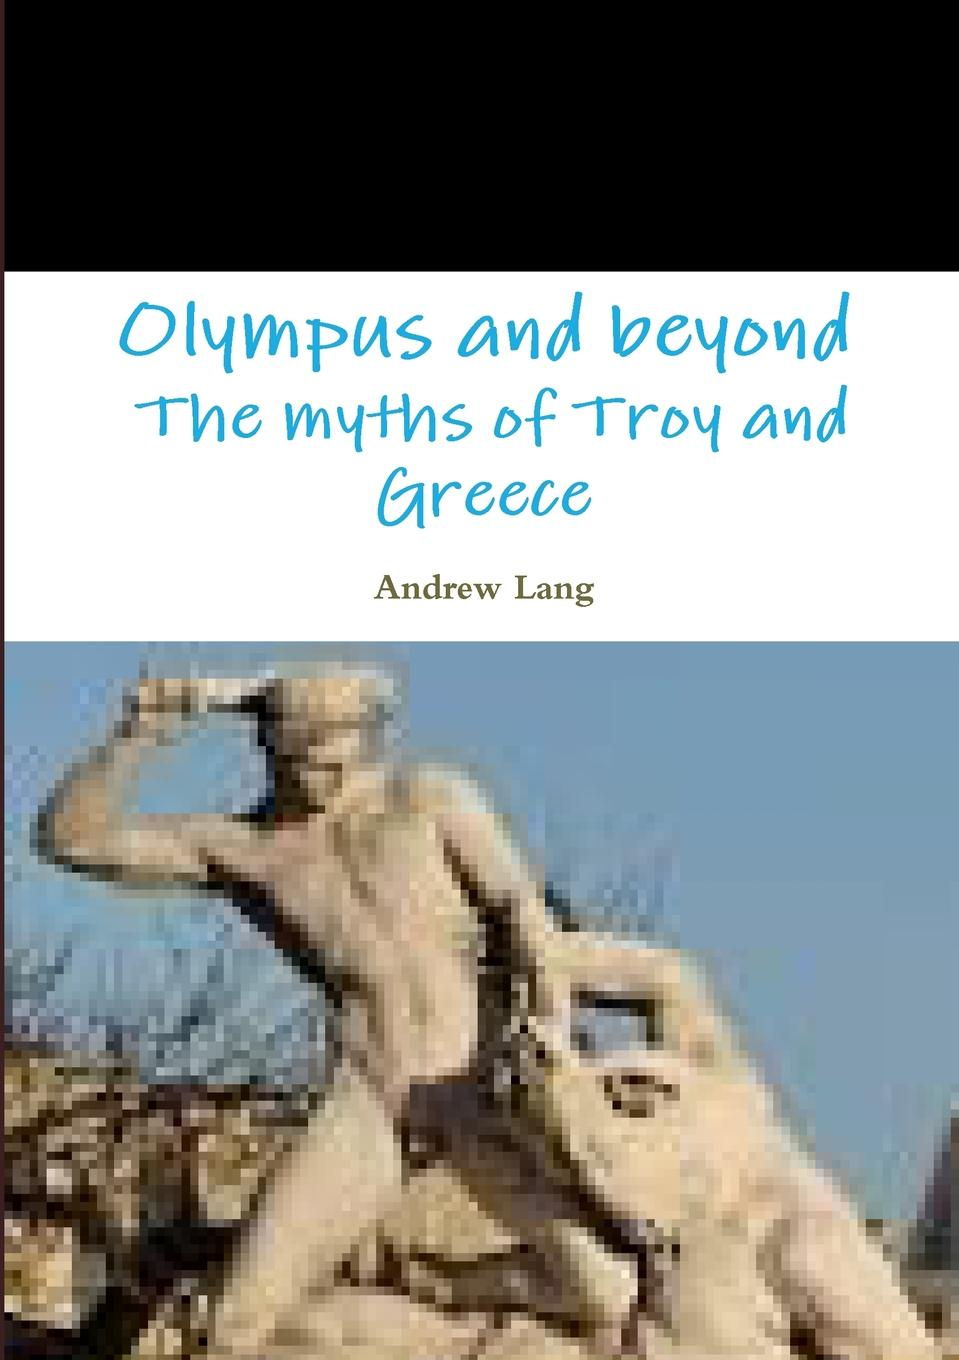 Andrew Lang Olympus and beyond The myths of Troy and Greece andrew hallam millionaire teacher the nine rules of wealth you should have learned in school